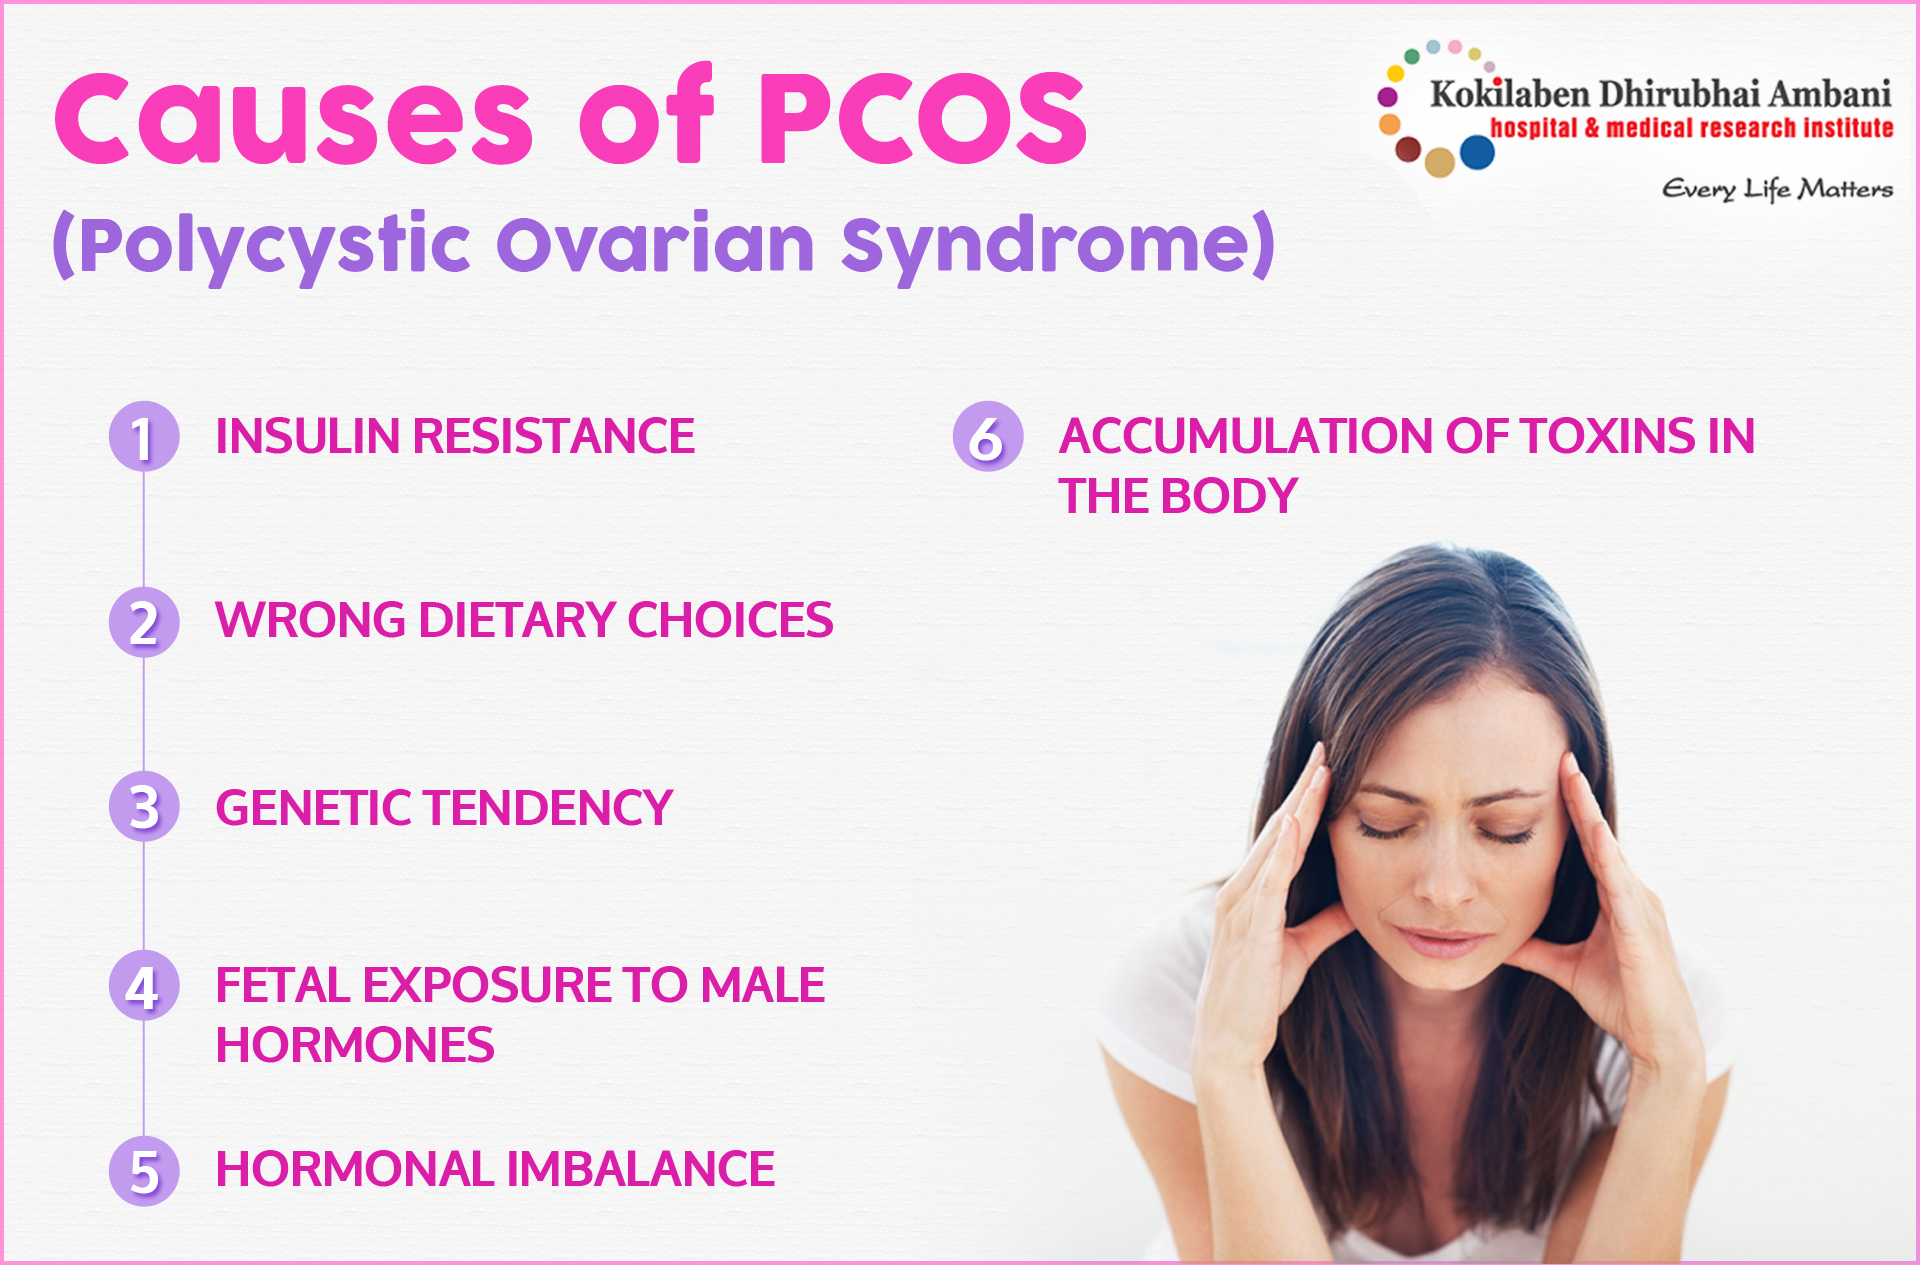 Causes of PCOS (Polycystic Ovarian Syndrome)